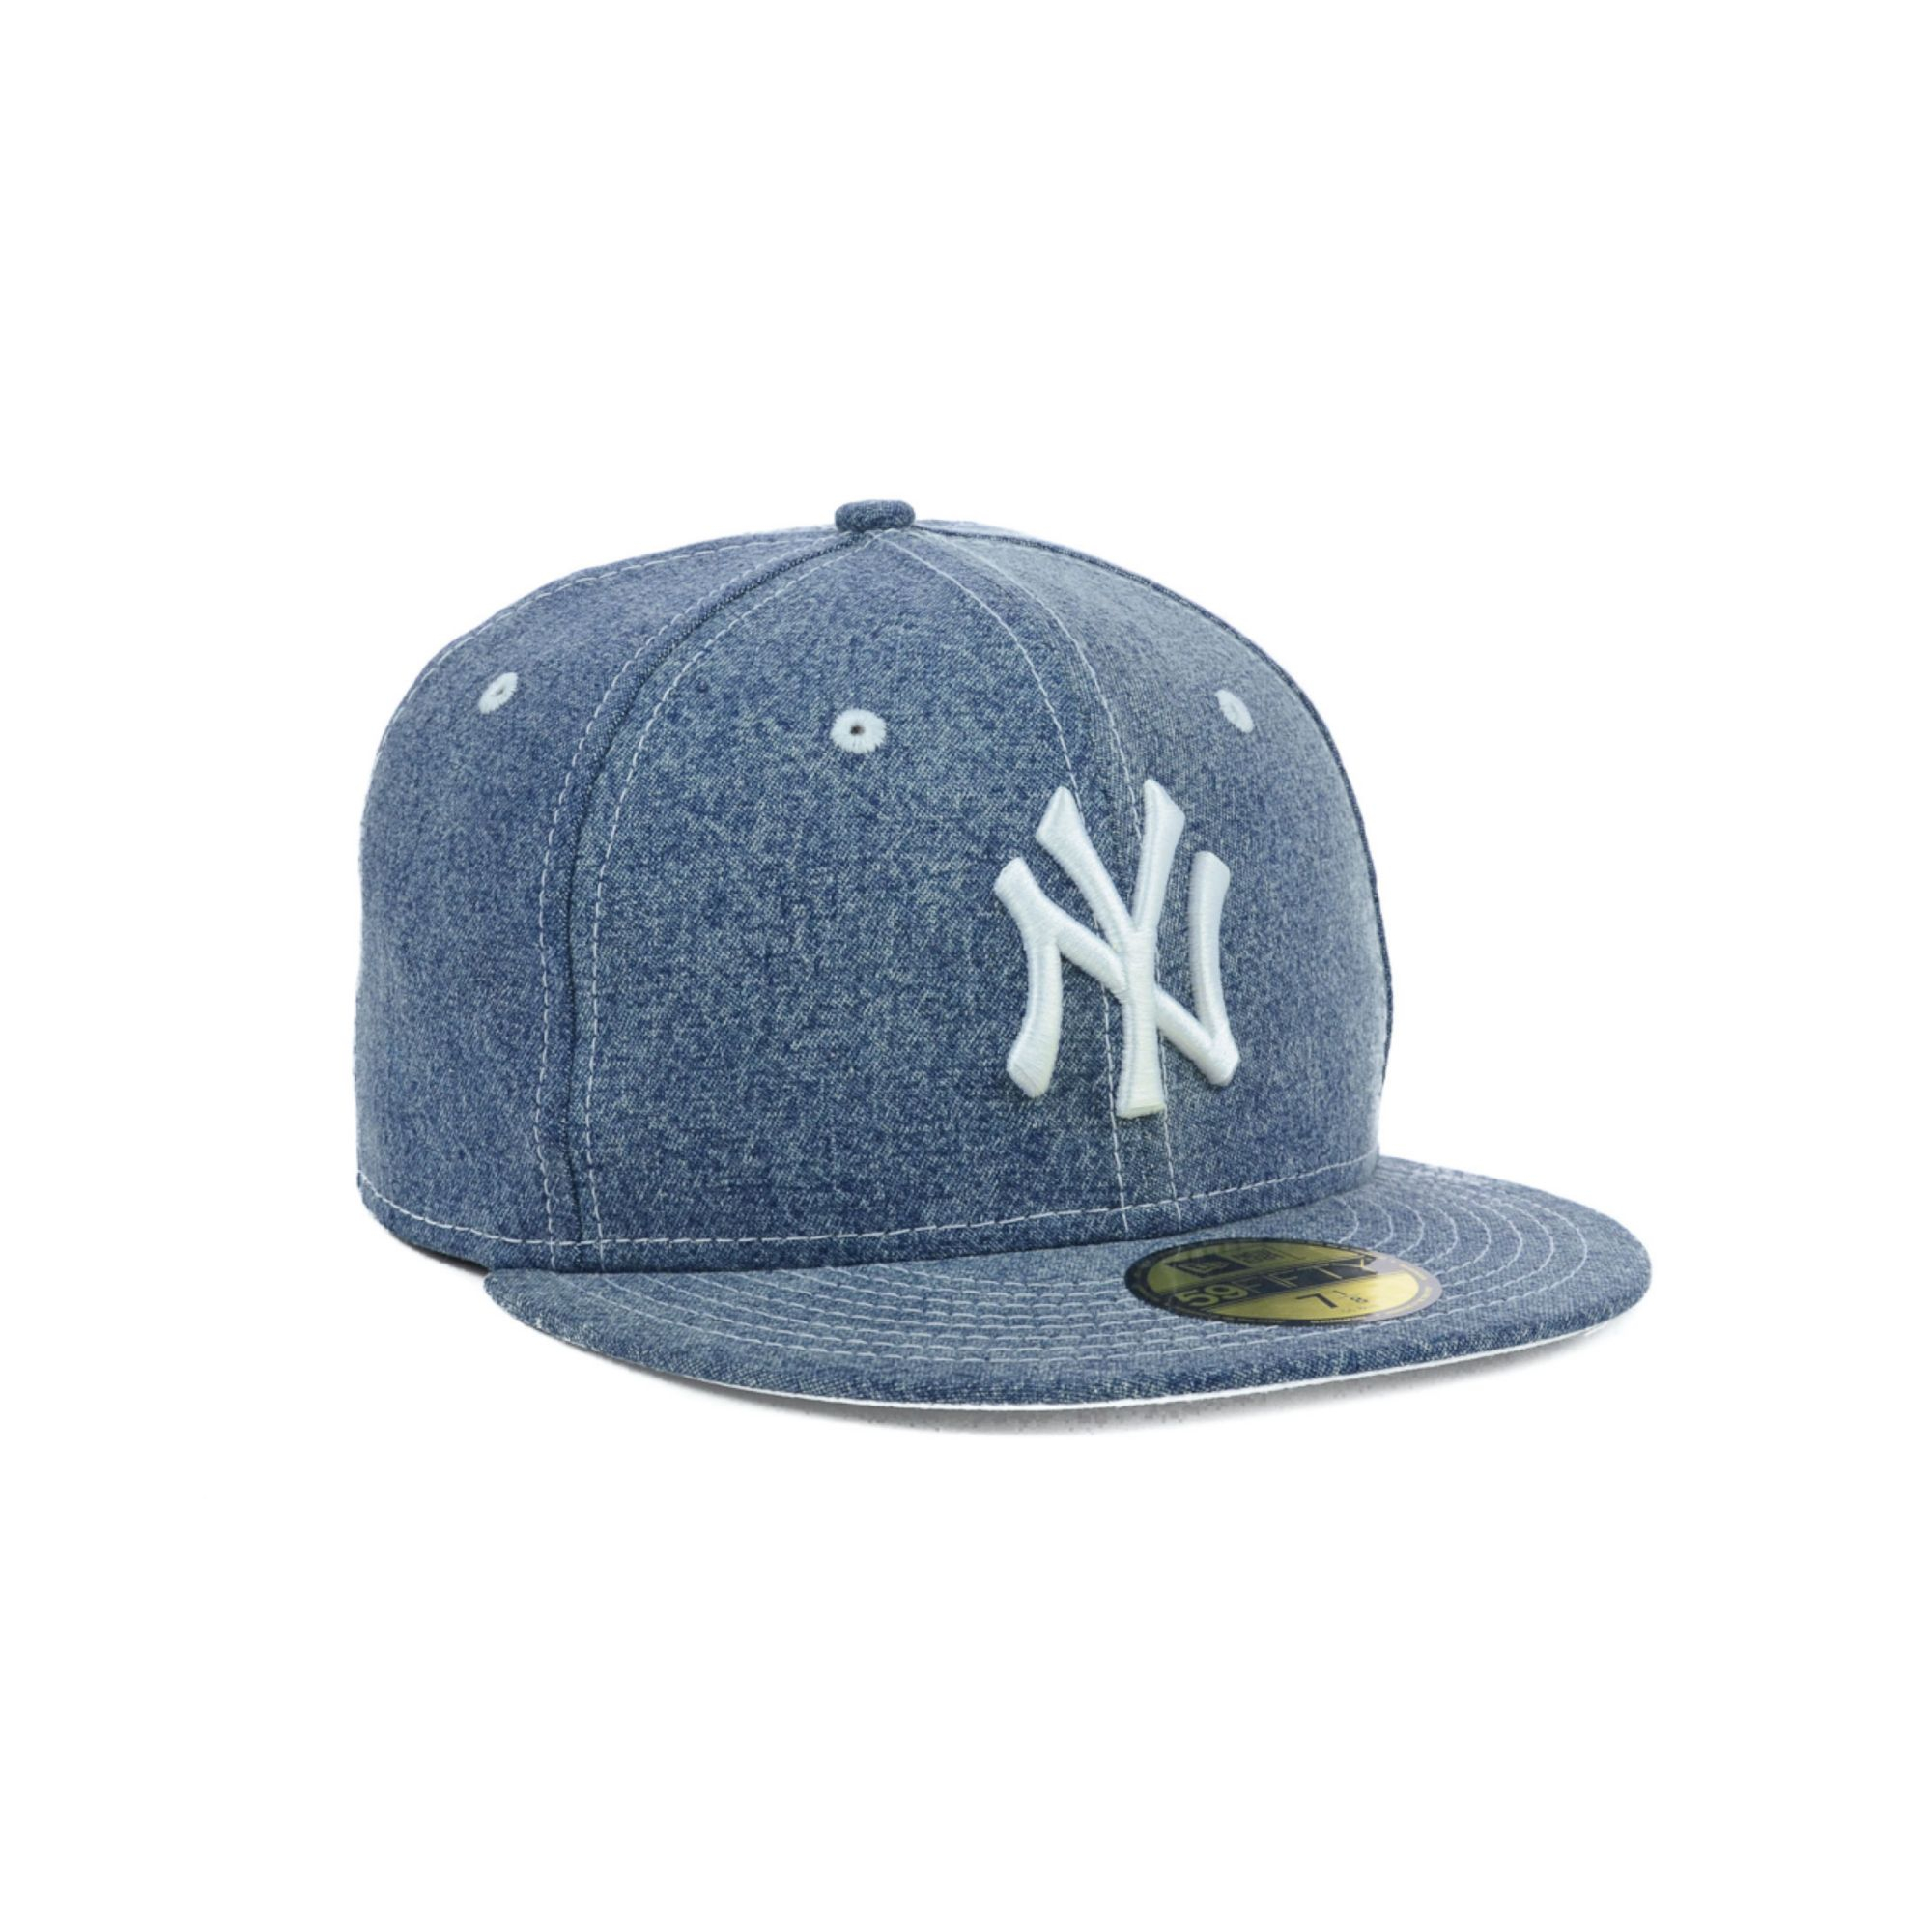 ea71c17c ... coupon code for lyst ktz new york yankees mlb classic denim 59fifty cap  in blue b5aed